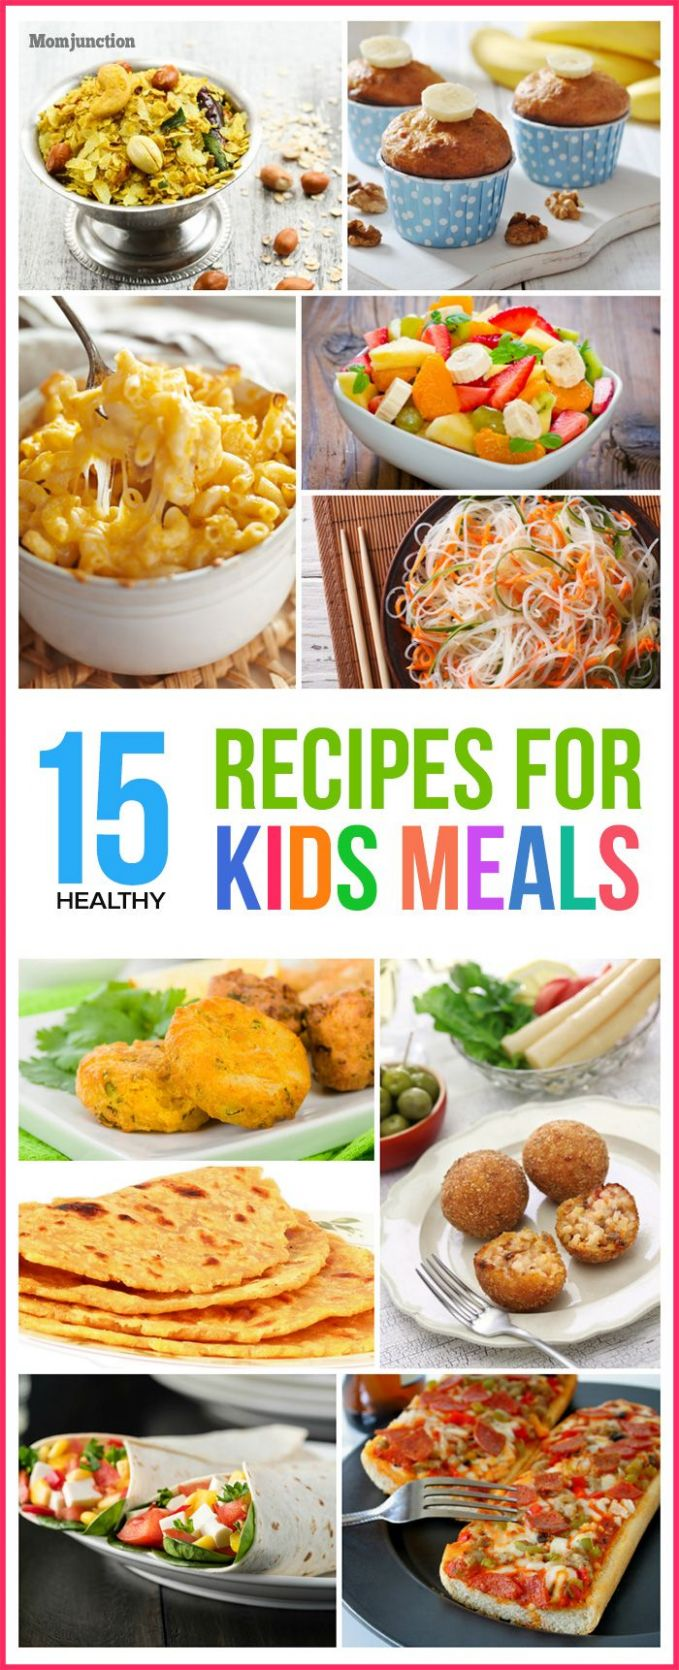 Top 11 Healthy Recipes For Kids' Meals | Kid friendly meals ...